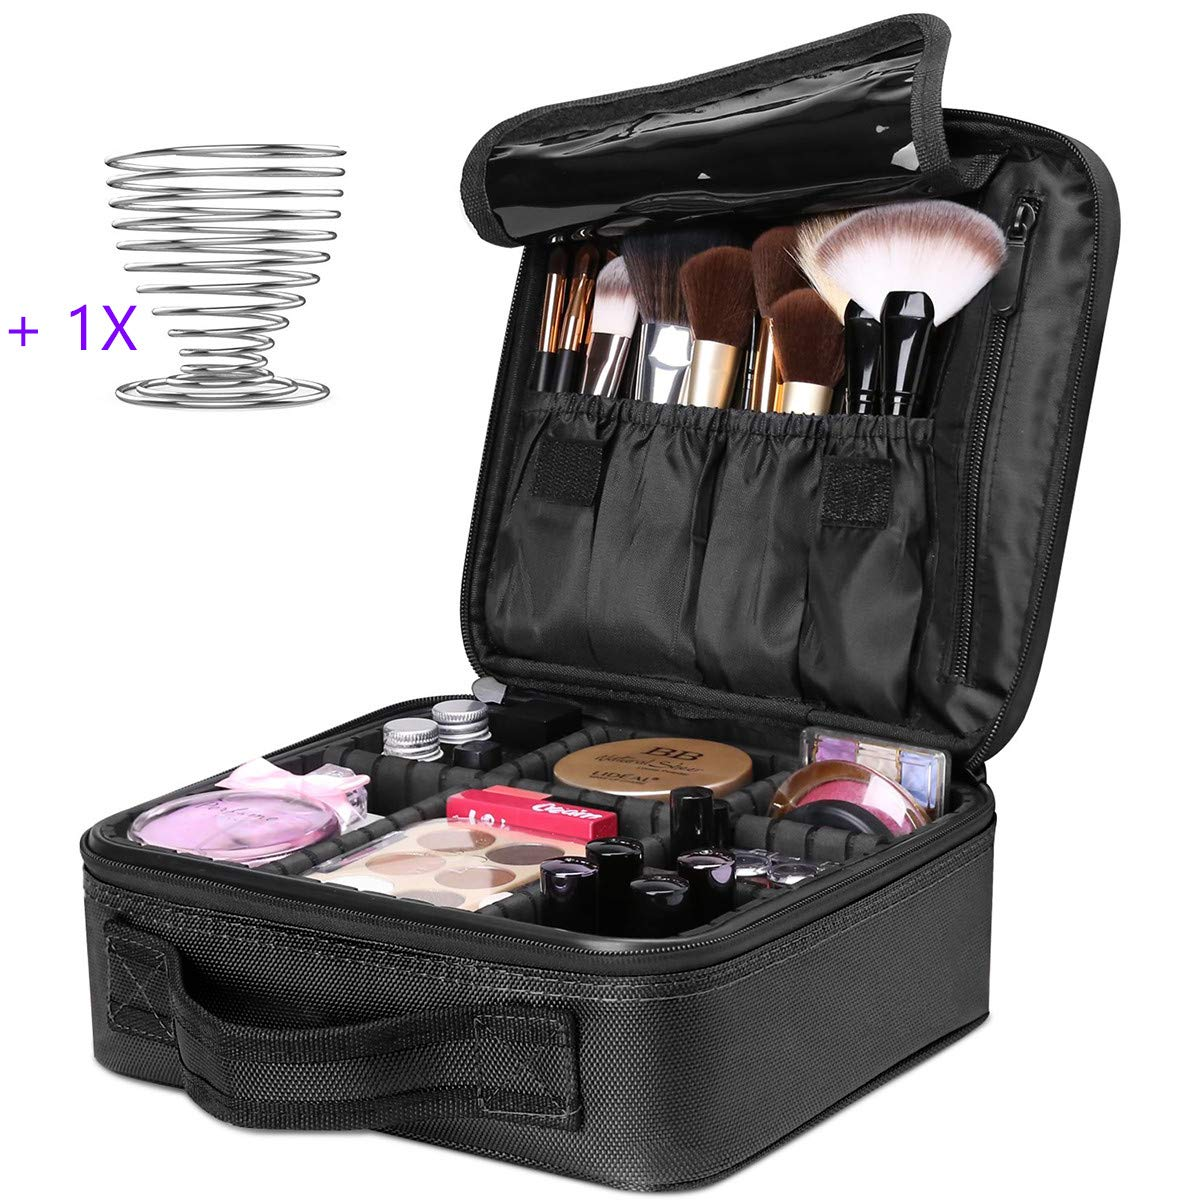 Travel Makeup AUNORM Train Case Makeup Cosmetic Case Organizer Portable Artist Storage Bag with Adjustable Dividers for Cosmetics Makeup Brushes Toiletry Jewelry Digital accessories Black